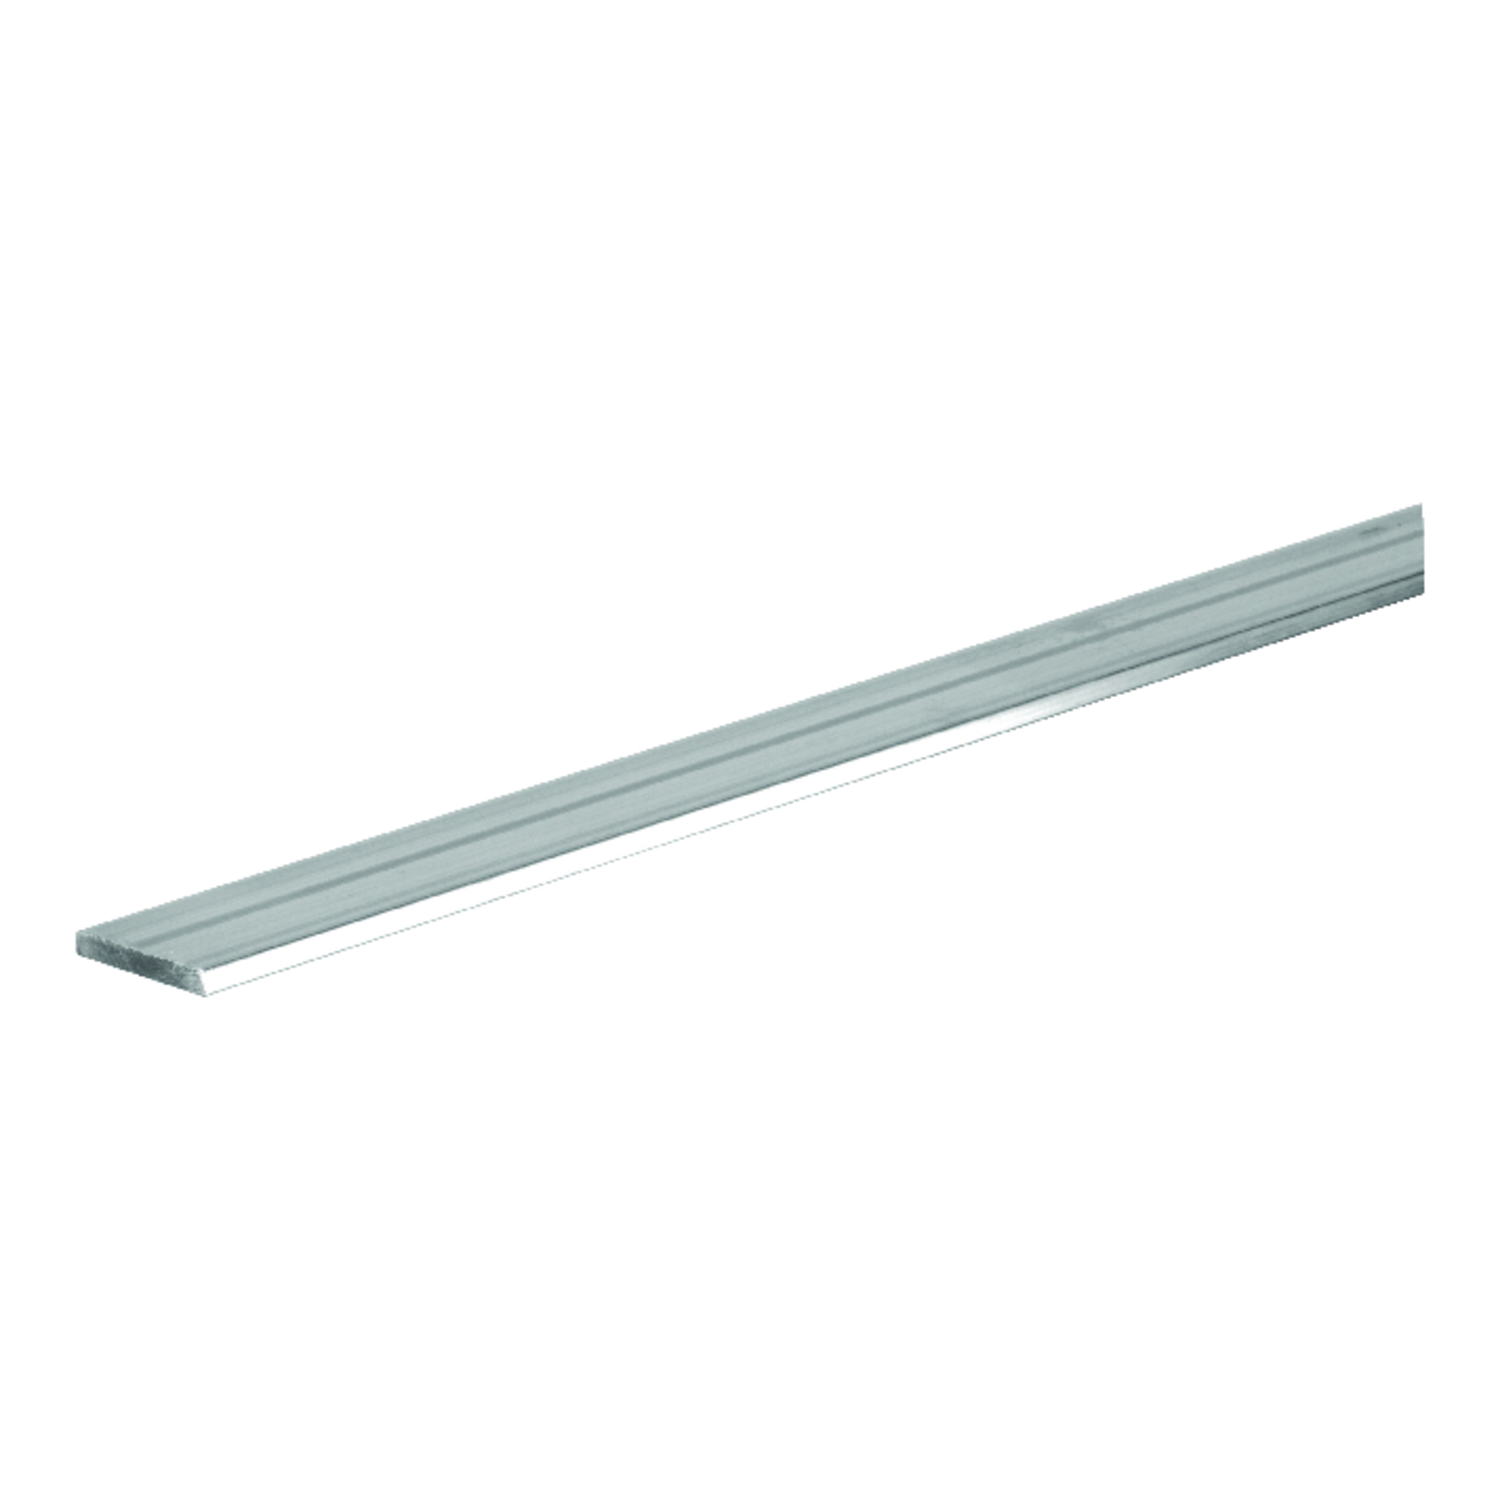 Boltmaster  0.0625 in.  x 0.5 in. W x 4 ft. L Weldable Aluminum Flat Bar  5 pk